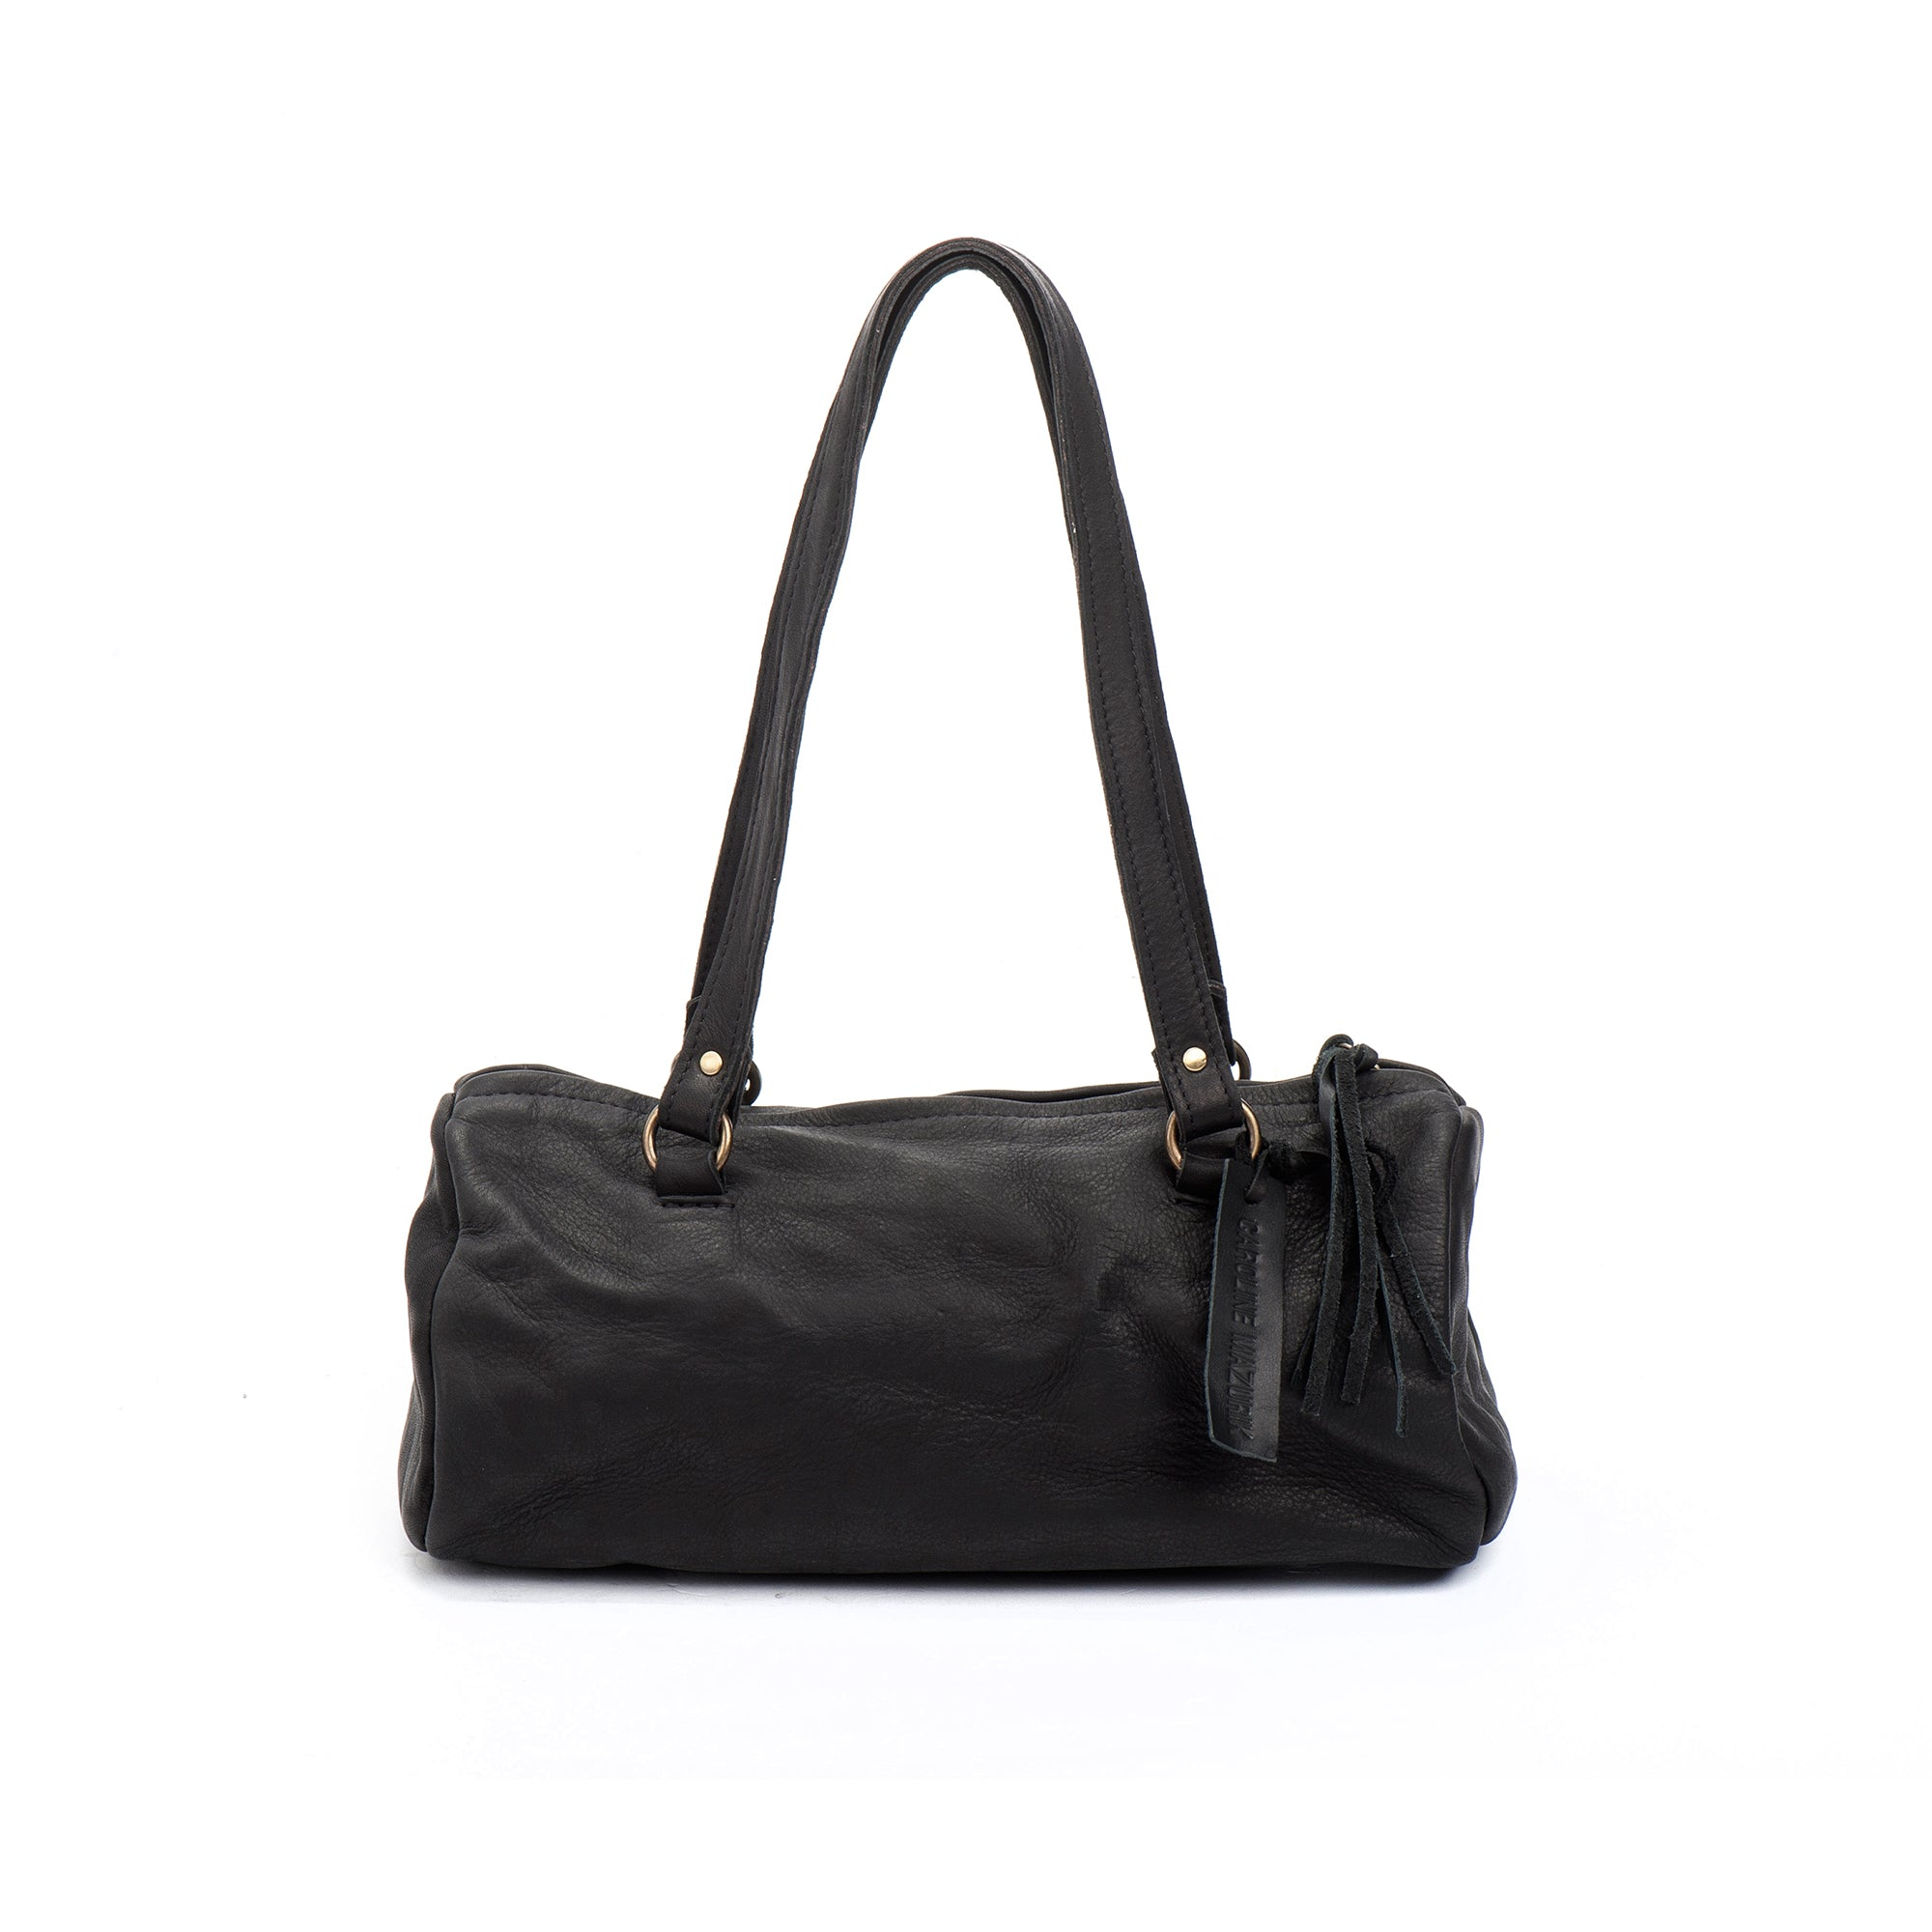 Black Leather Shoulder Handbag medium perfect size Italian leather woman bag